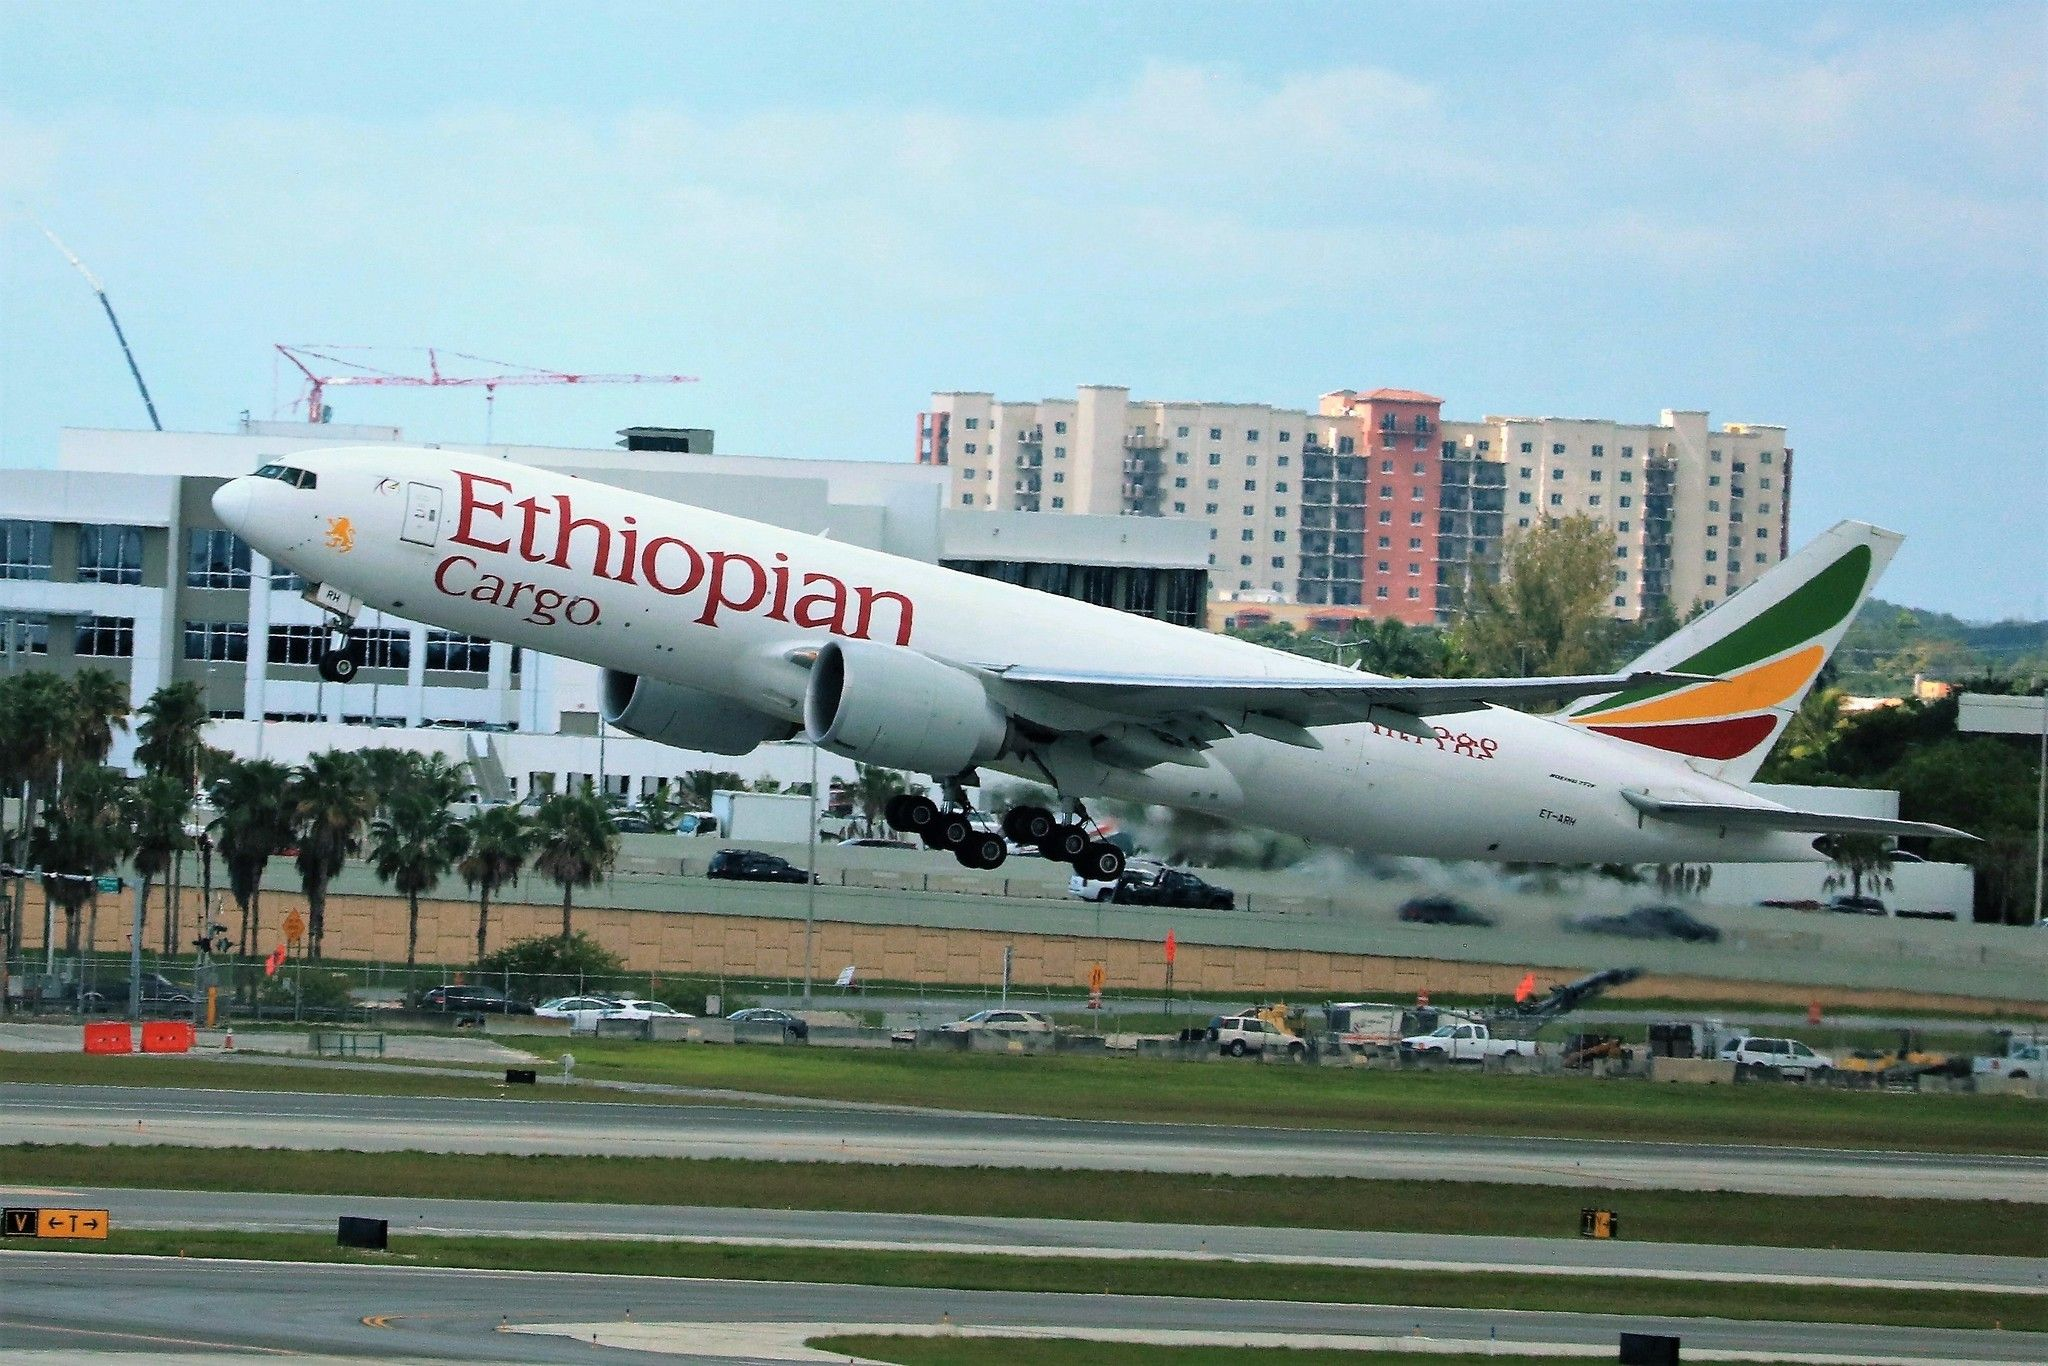 Ethiopian Airlines 777 Aircraft Aviation